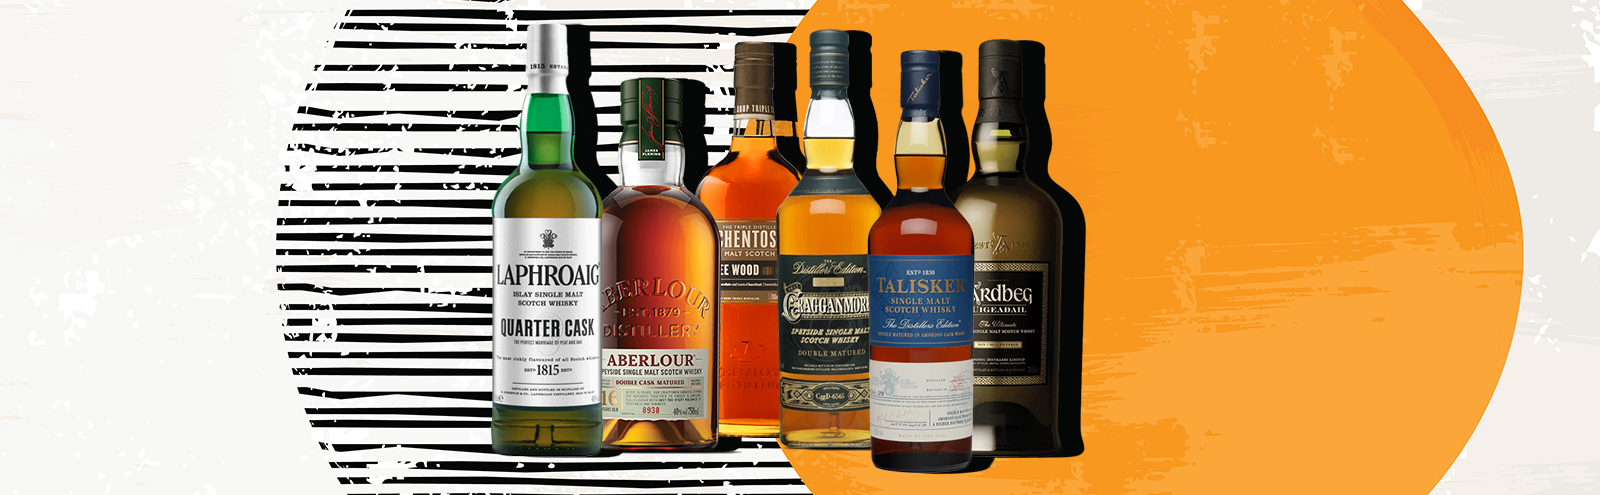 The Best Bottles Of Scotch Whisky Between $80-$90